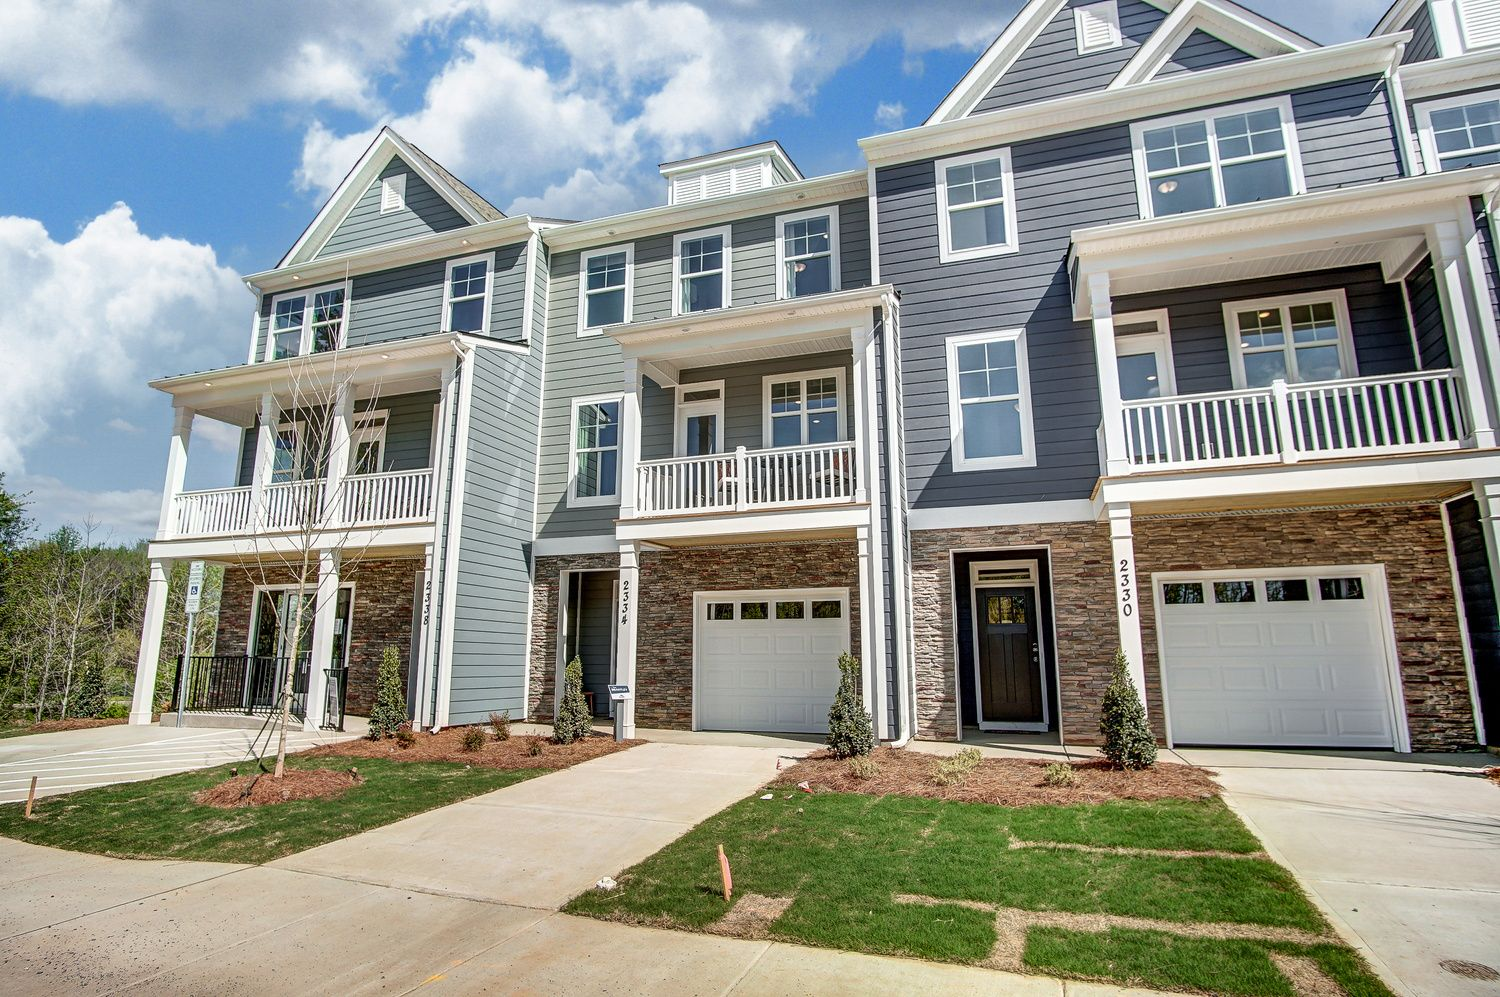 Glenmere Townhomes